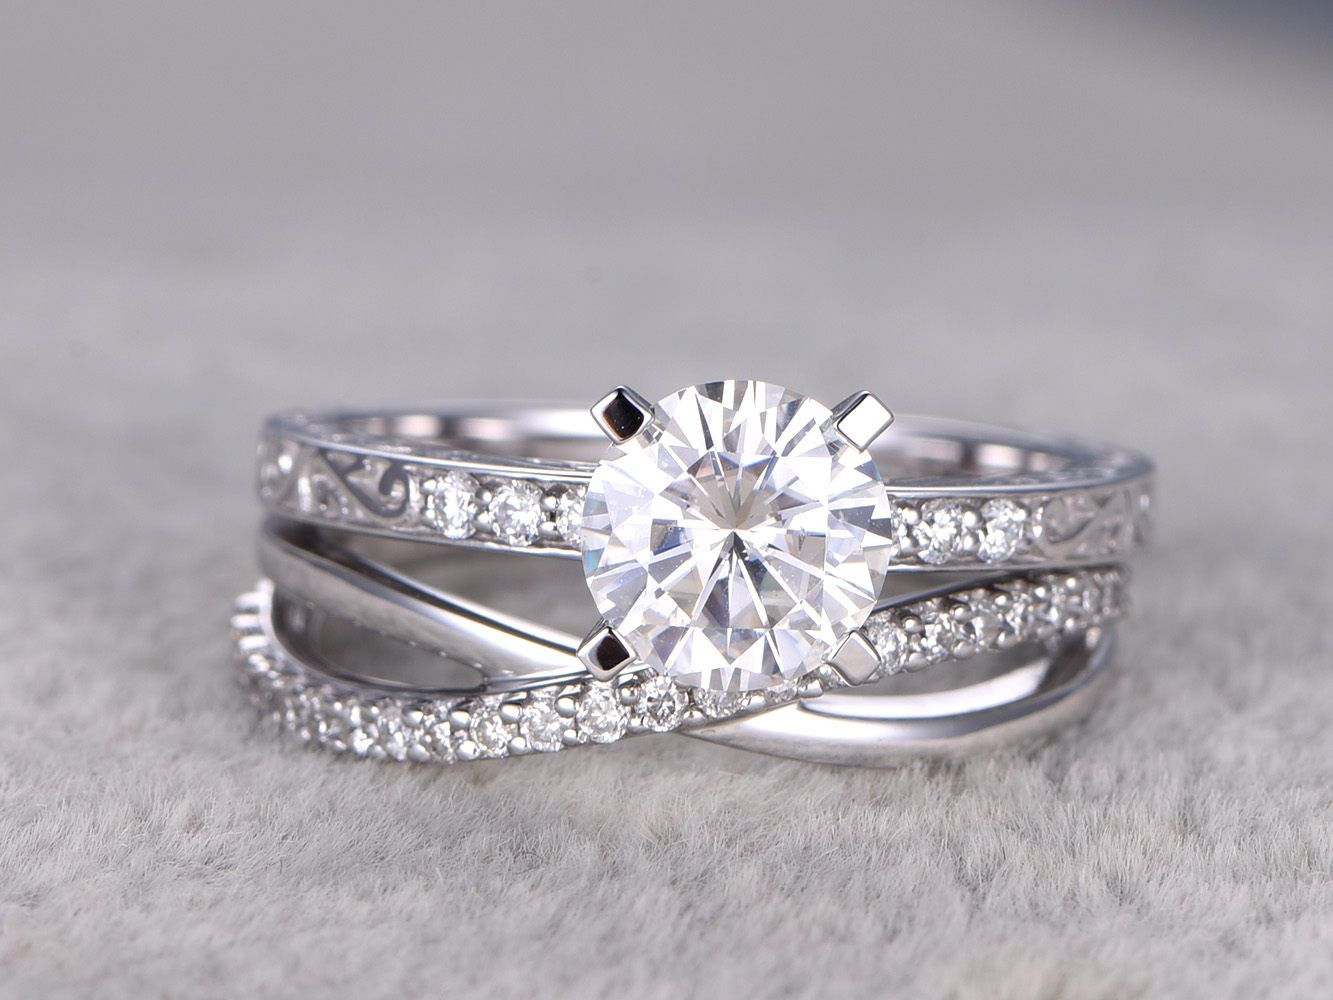 2 Moissanite Bridal Set,solitaire Engagement Ring,criss Cross Wedding Band, Diamond,